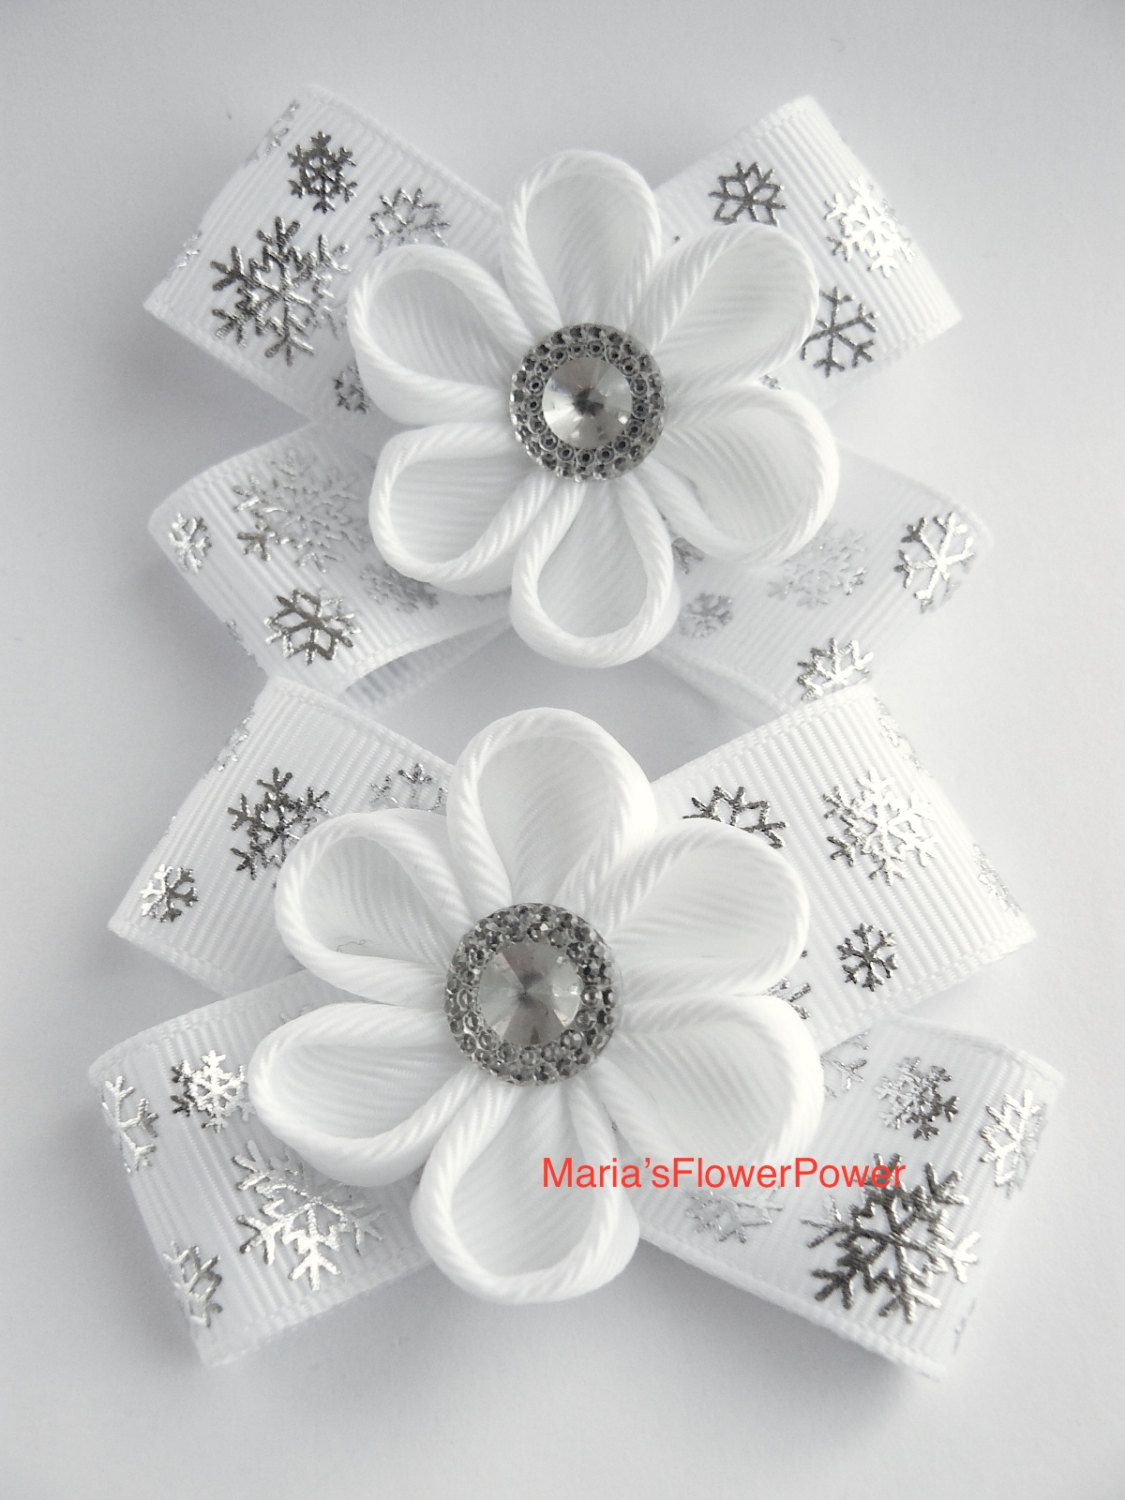 Items similar to Handmade Kanzashi girls toddler baby hair clips bows- buy in UK,shipping worldwide- Snowflakes Christmas hair accessories on Etsy